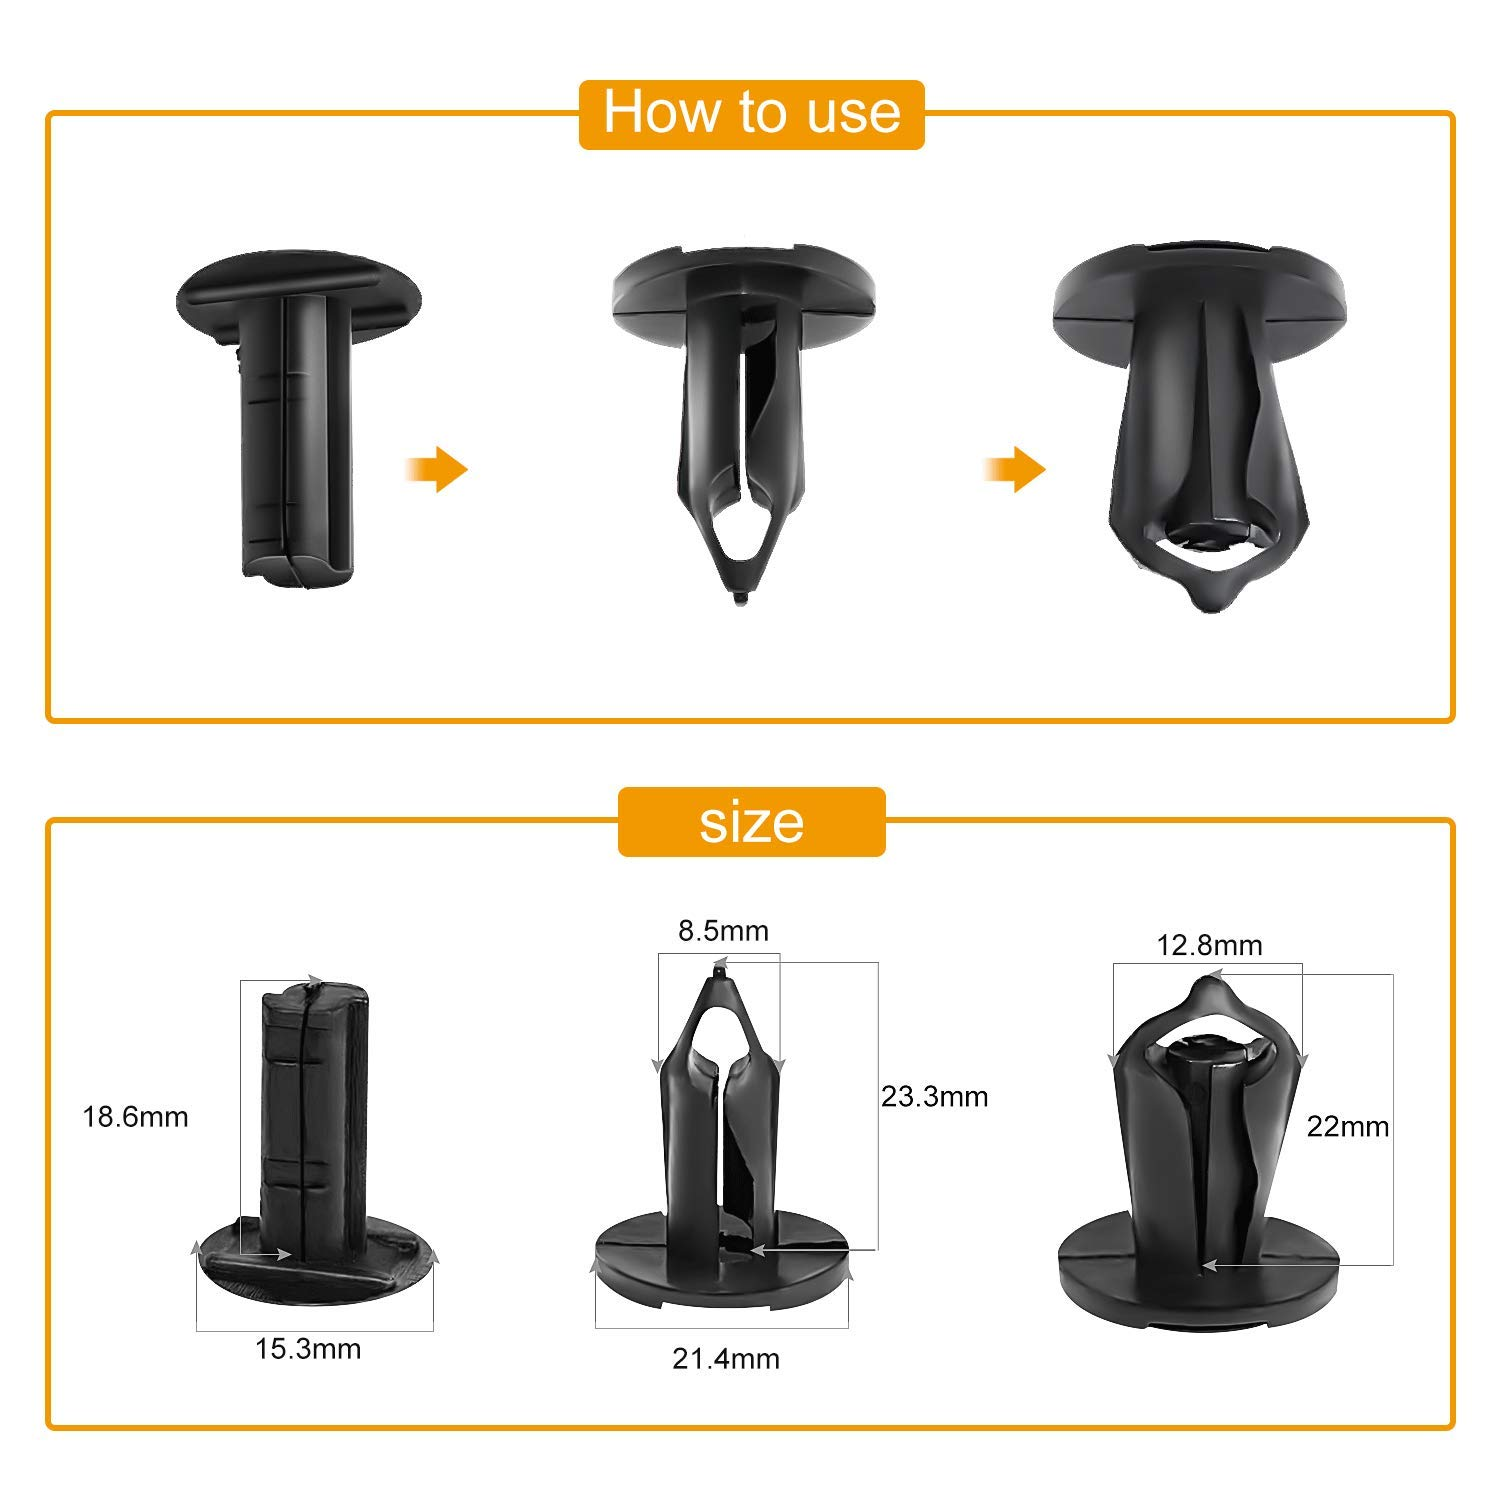 Gooacc Nylon Bumper Fastener Rivet Clips Gm 21030249 1993 Fuel Filter Housing Ford N807389s Automotive Furniture Assembly Expansion Screws Kit Auto Body 8mm